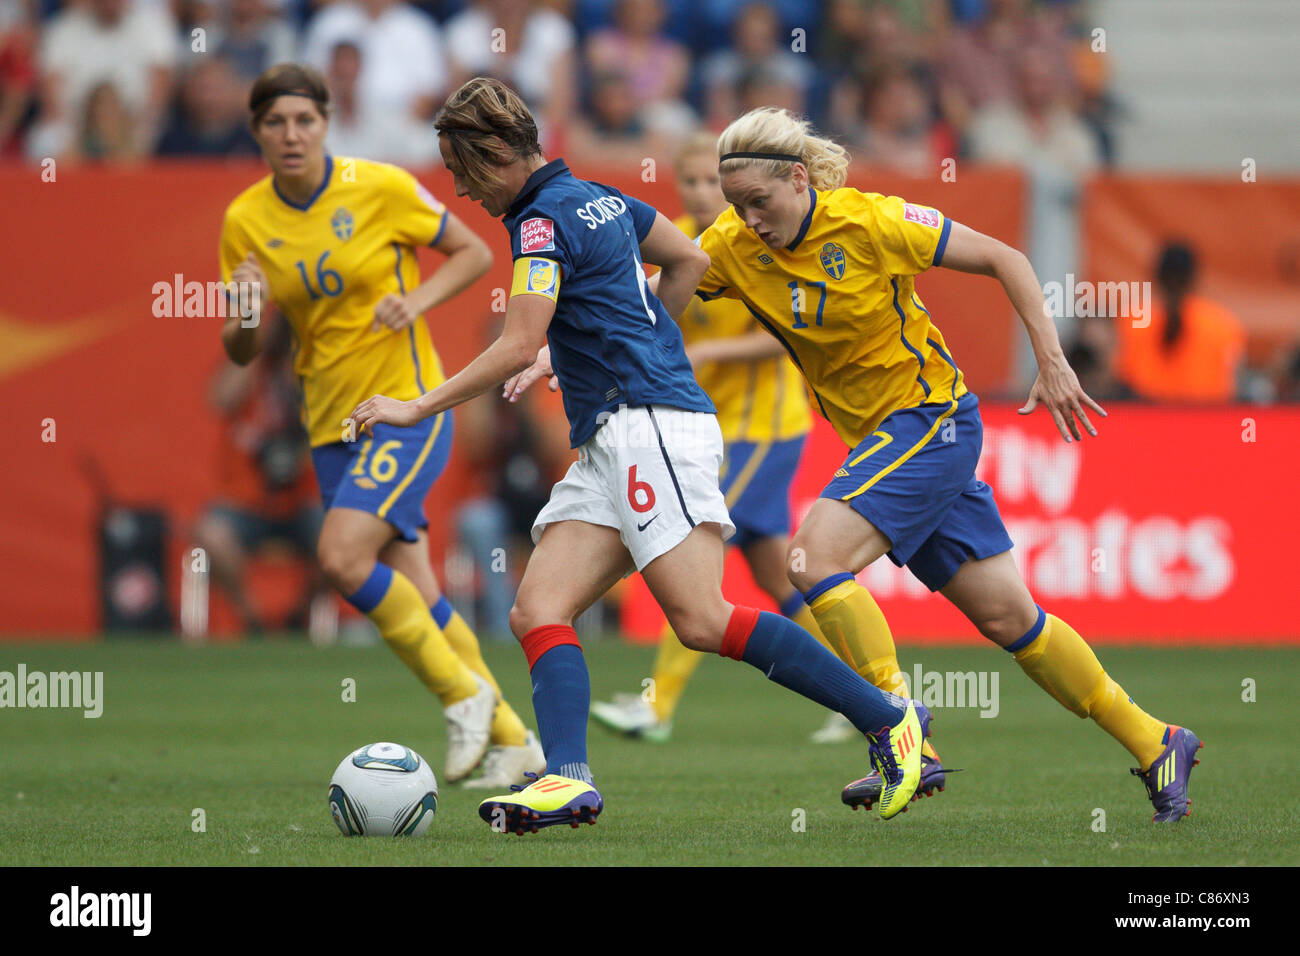 Sandrine Soubeyrand of France (L) controls the ball against Lisa Dahlkvsit of Sweden during the 2011 Women's - Stock Image